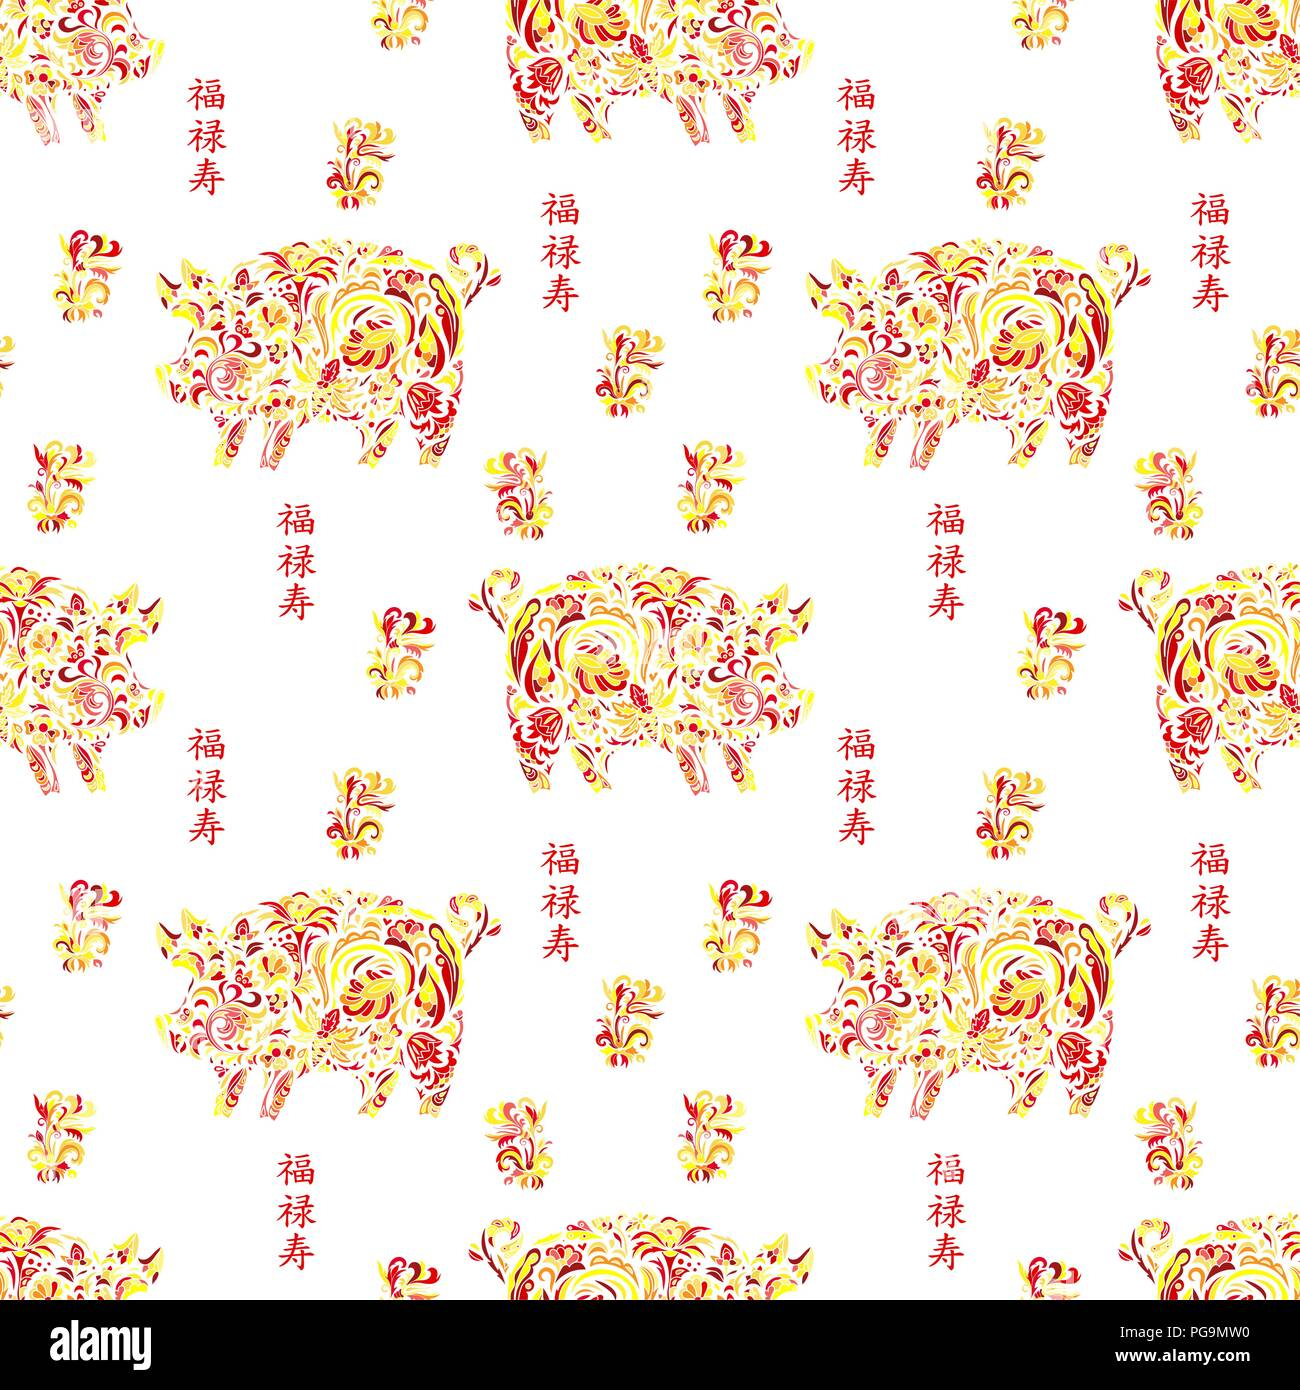 Seamless Pattern With Pigs On Zentangle Style Chinese New Year